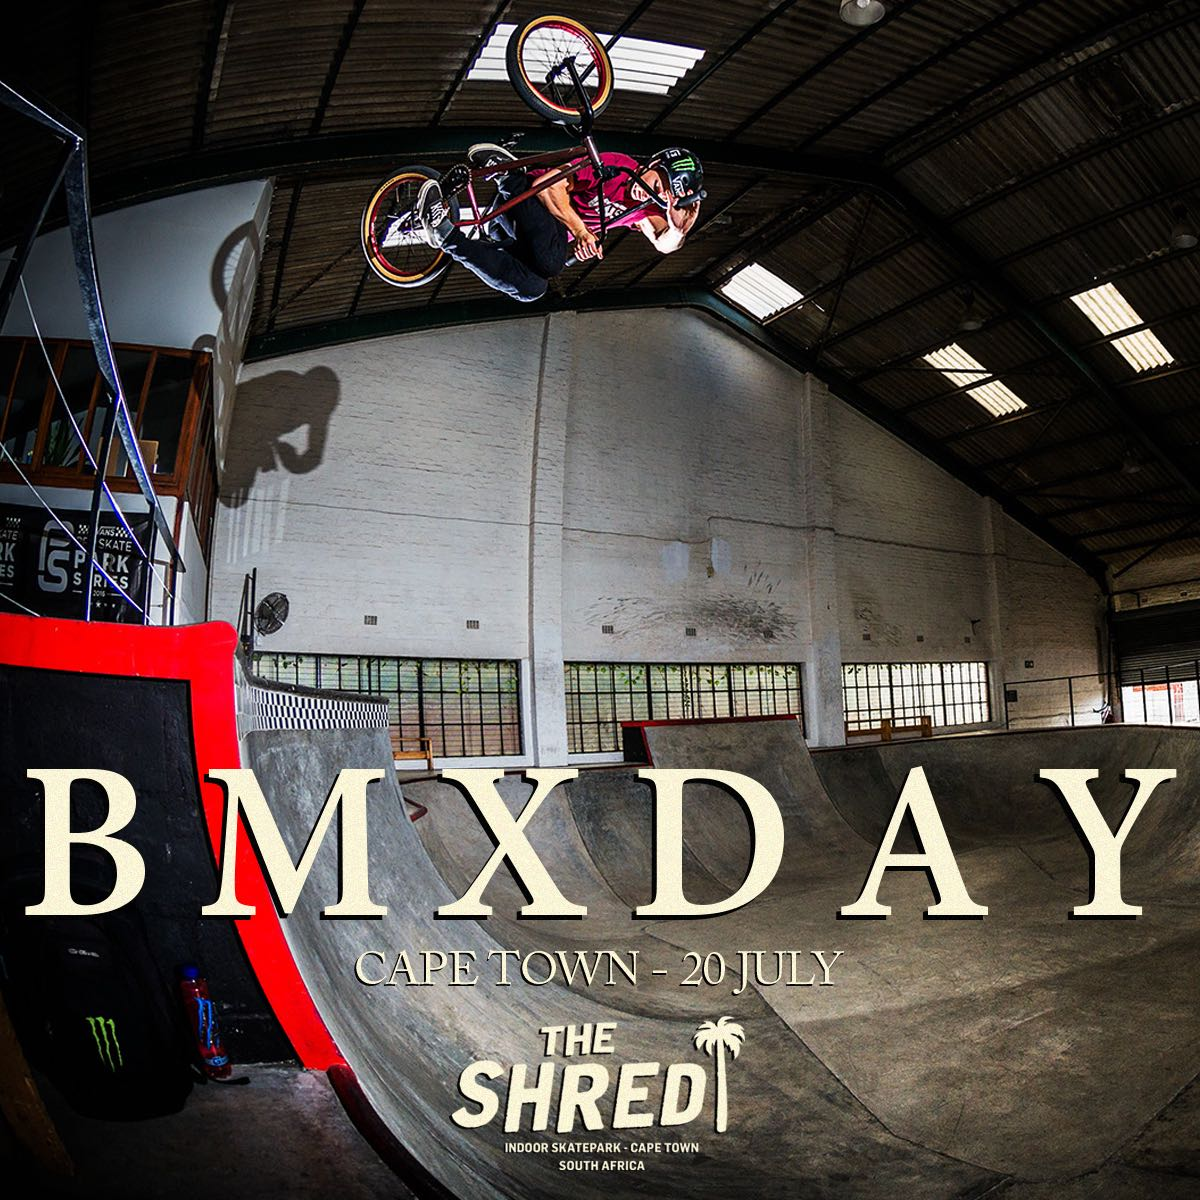 Details for #BMXDAY 2018 taking place at The Shred Skatepark in Cape Town